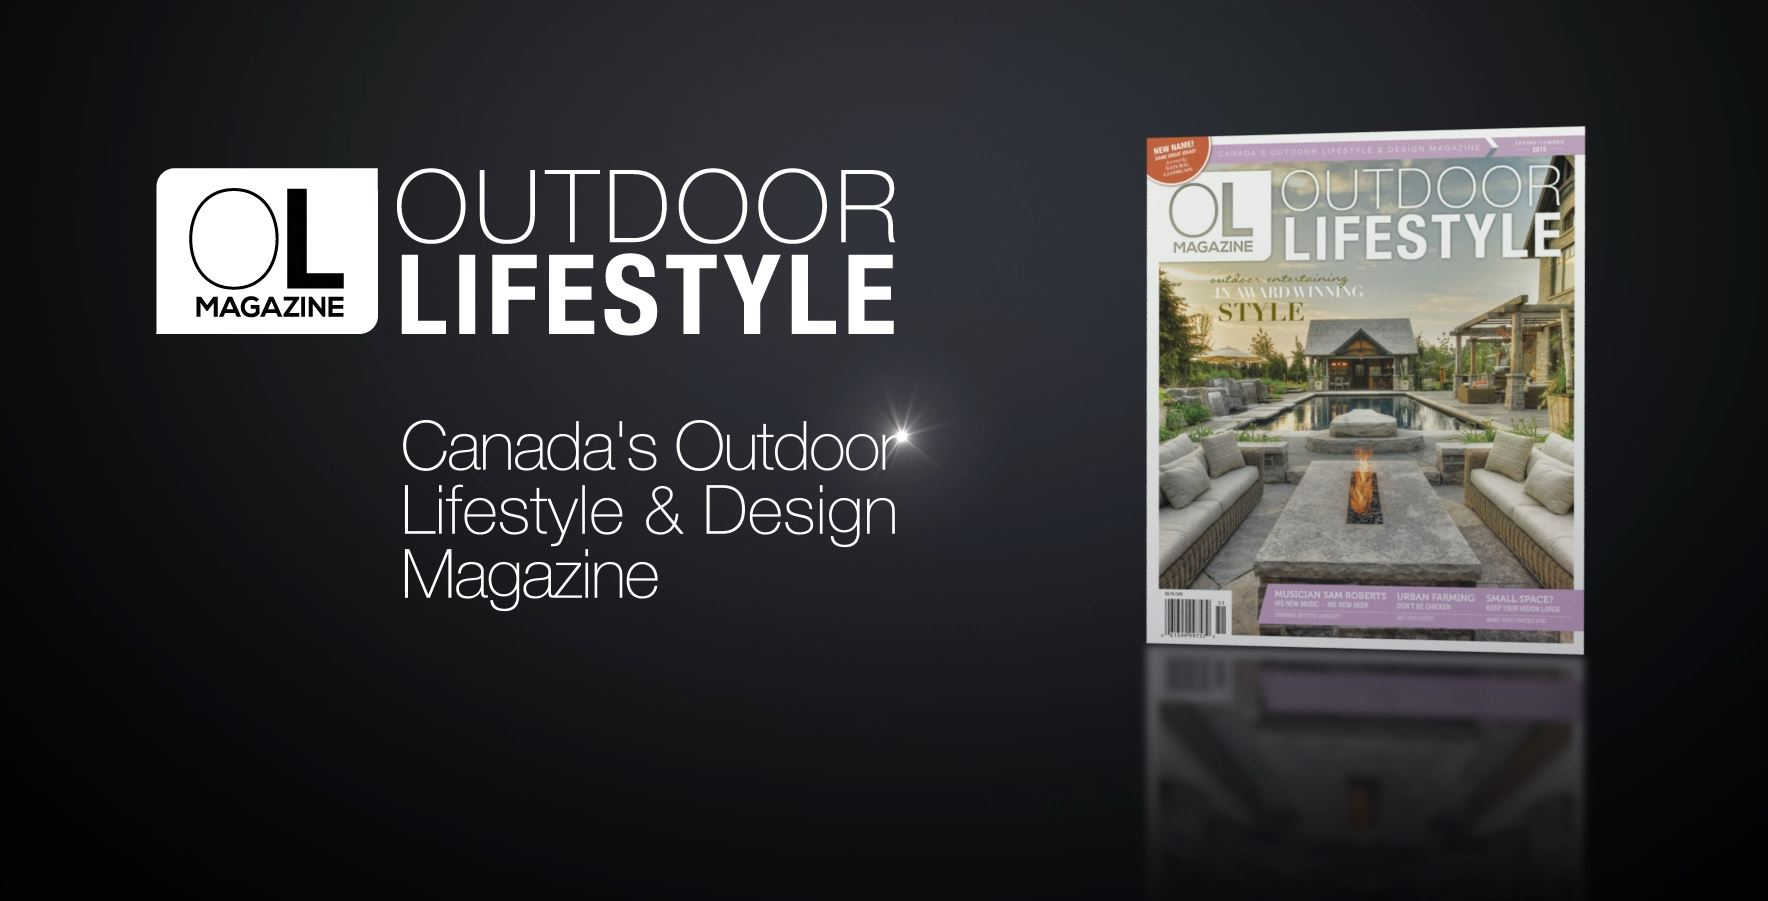 Motion Graphics • 10 • Company Promo • Outdoor Lifestyle Magazine